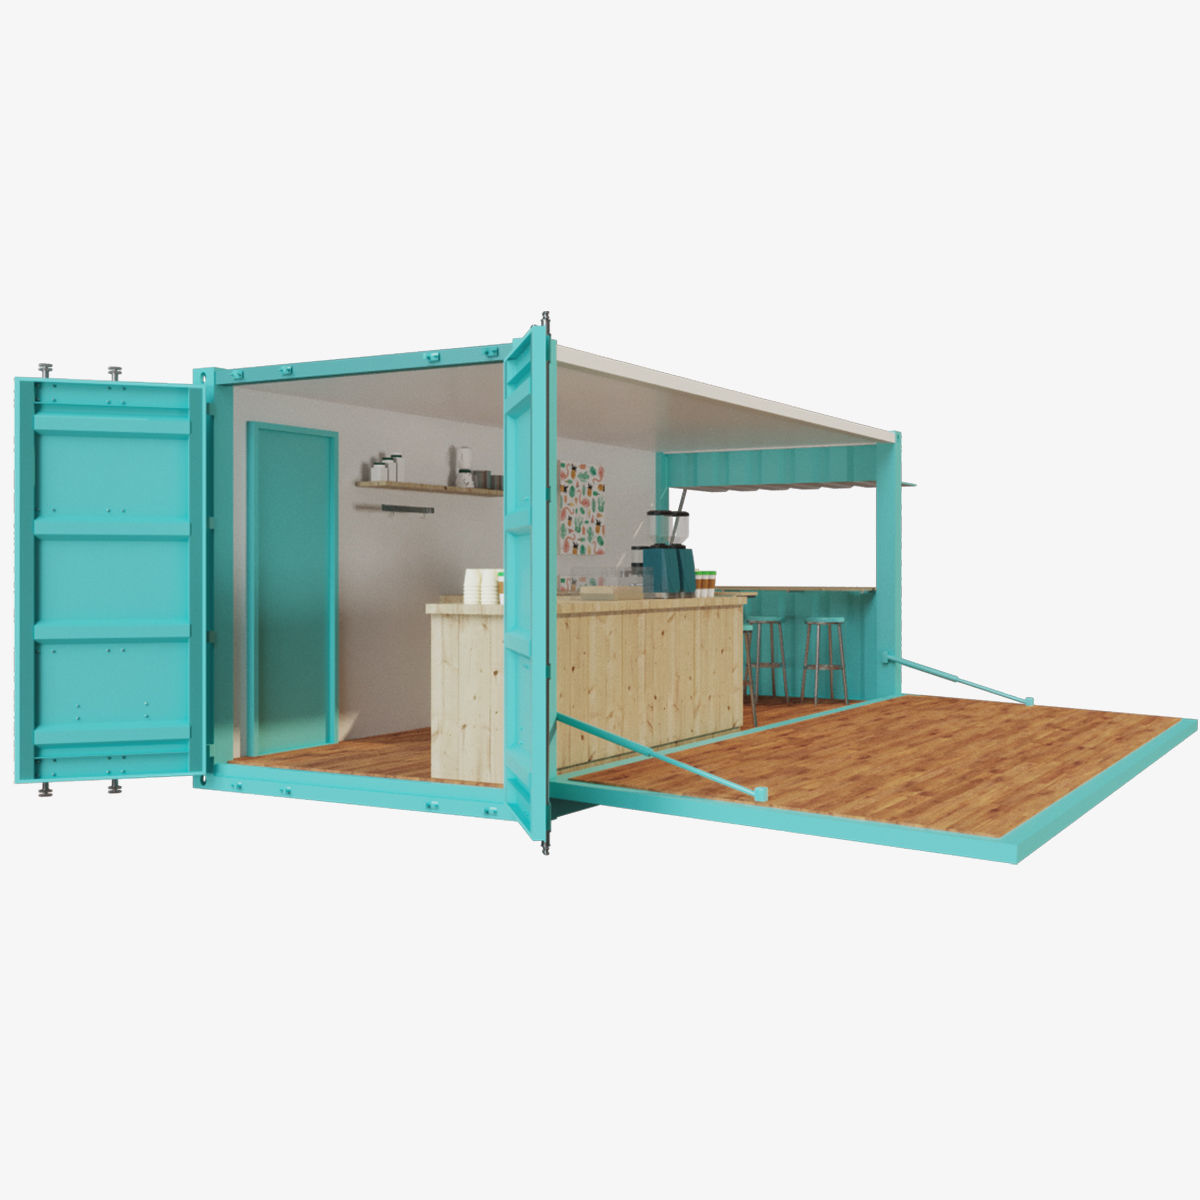 V2 Mobile shipping container restaurant Container Cafe